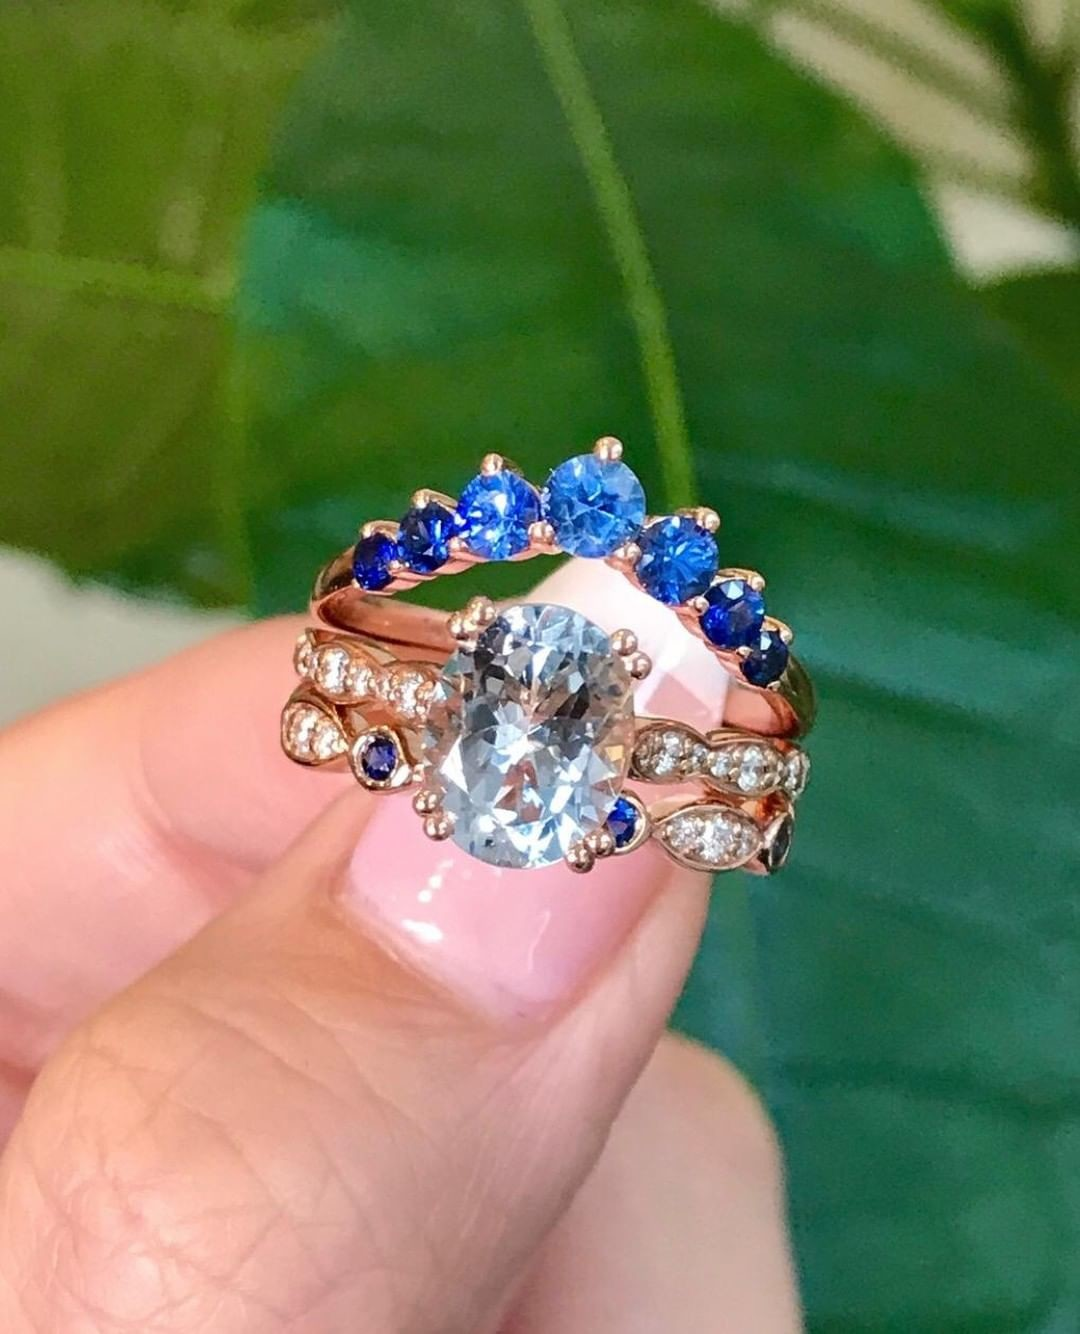 The response we've gotten about our 7 Stone Gradient Sapphire Ring has been so loving! 💙 See how she starts light and aqua blue